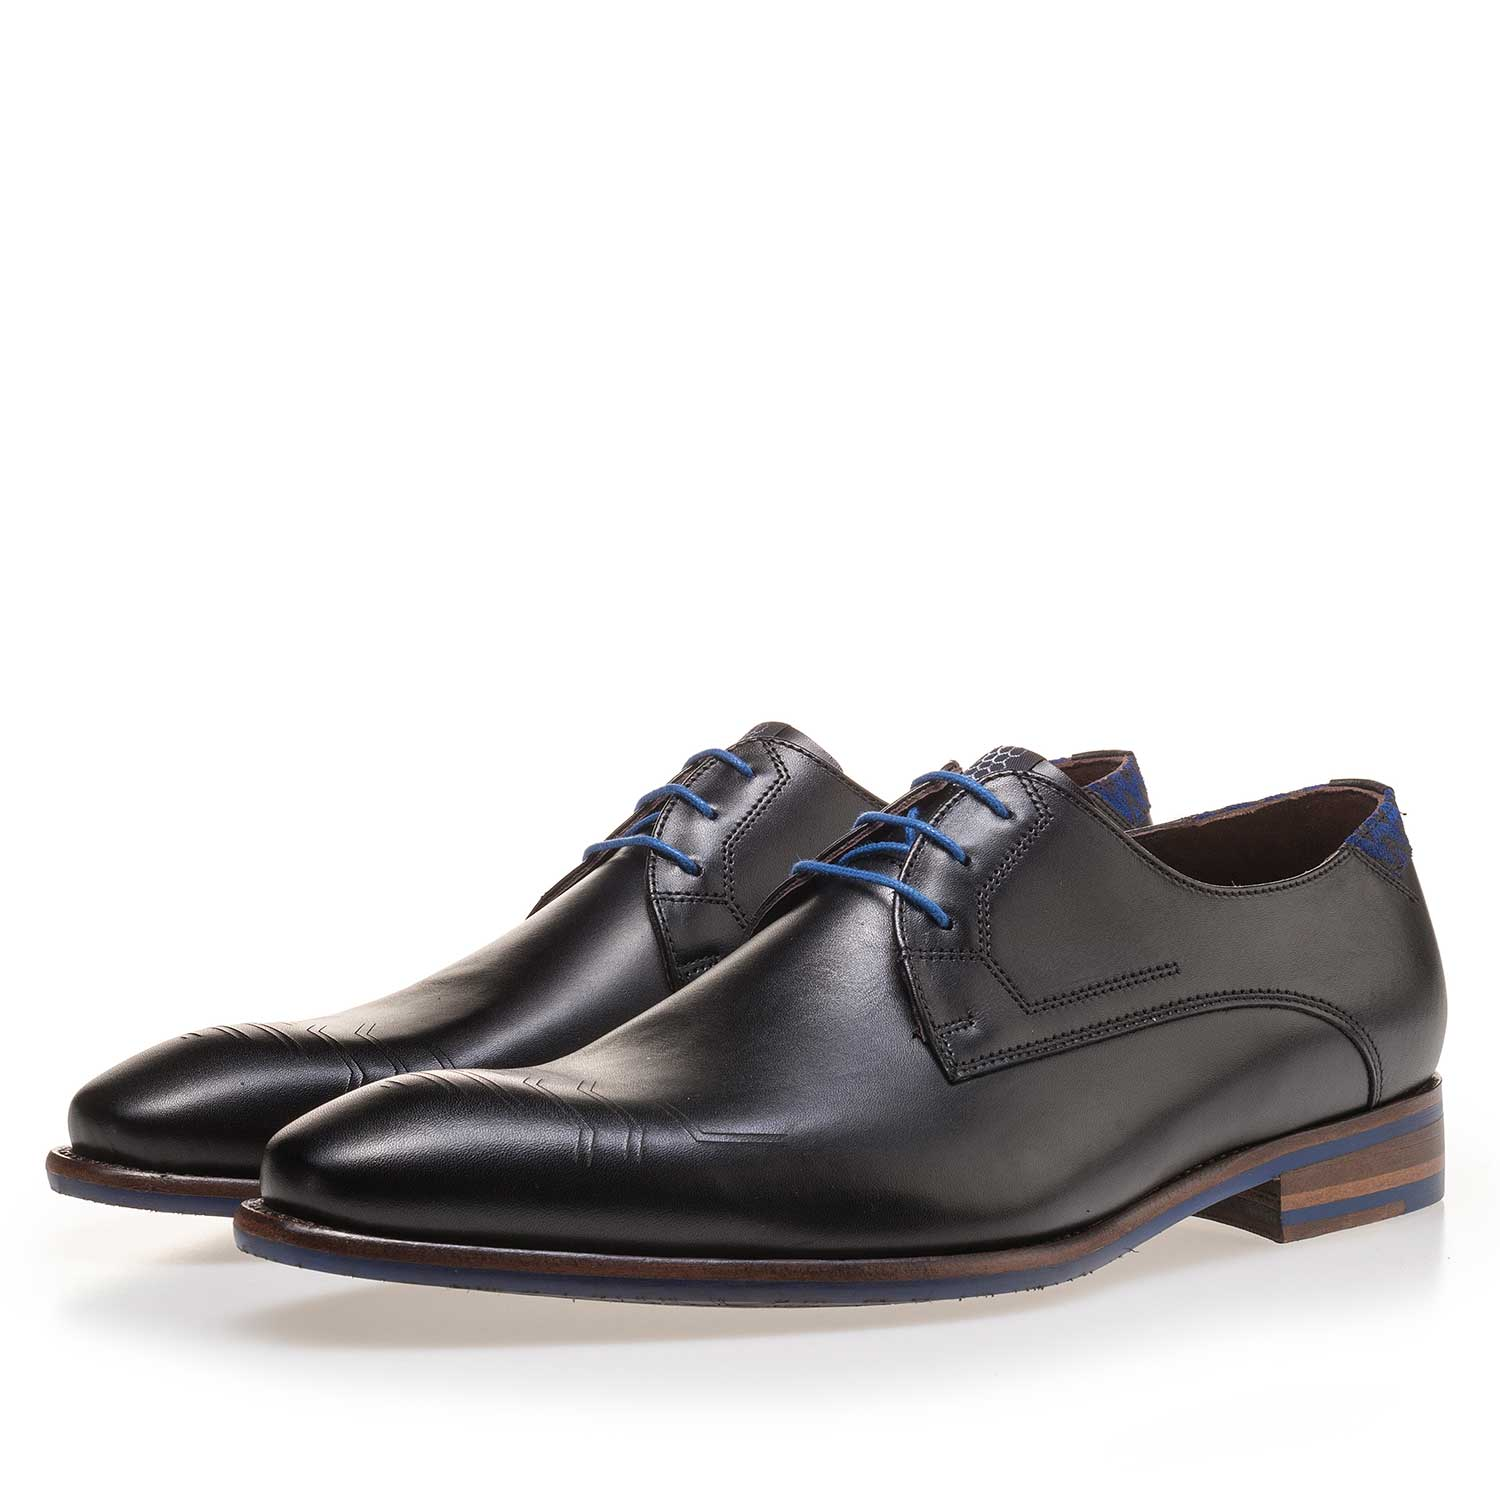 14092/04 - Black calf's leather lace shoe